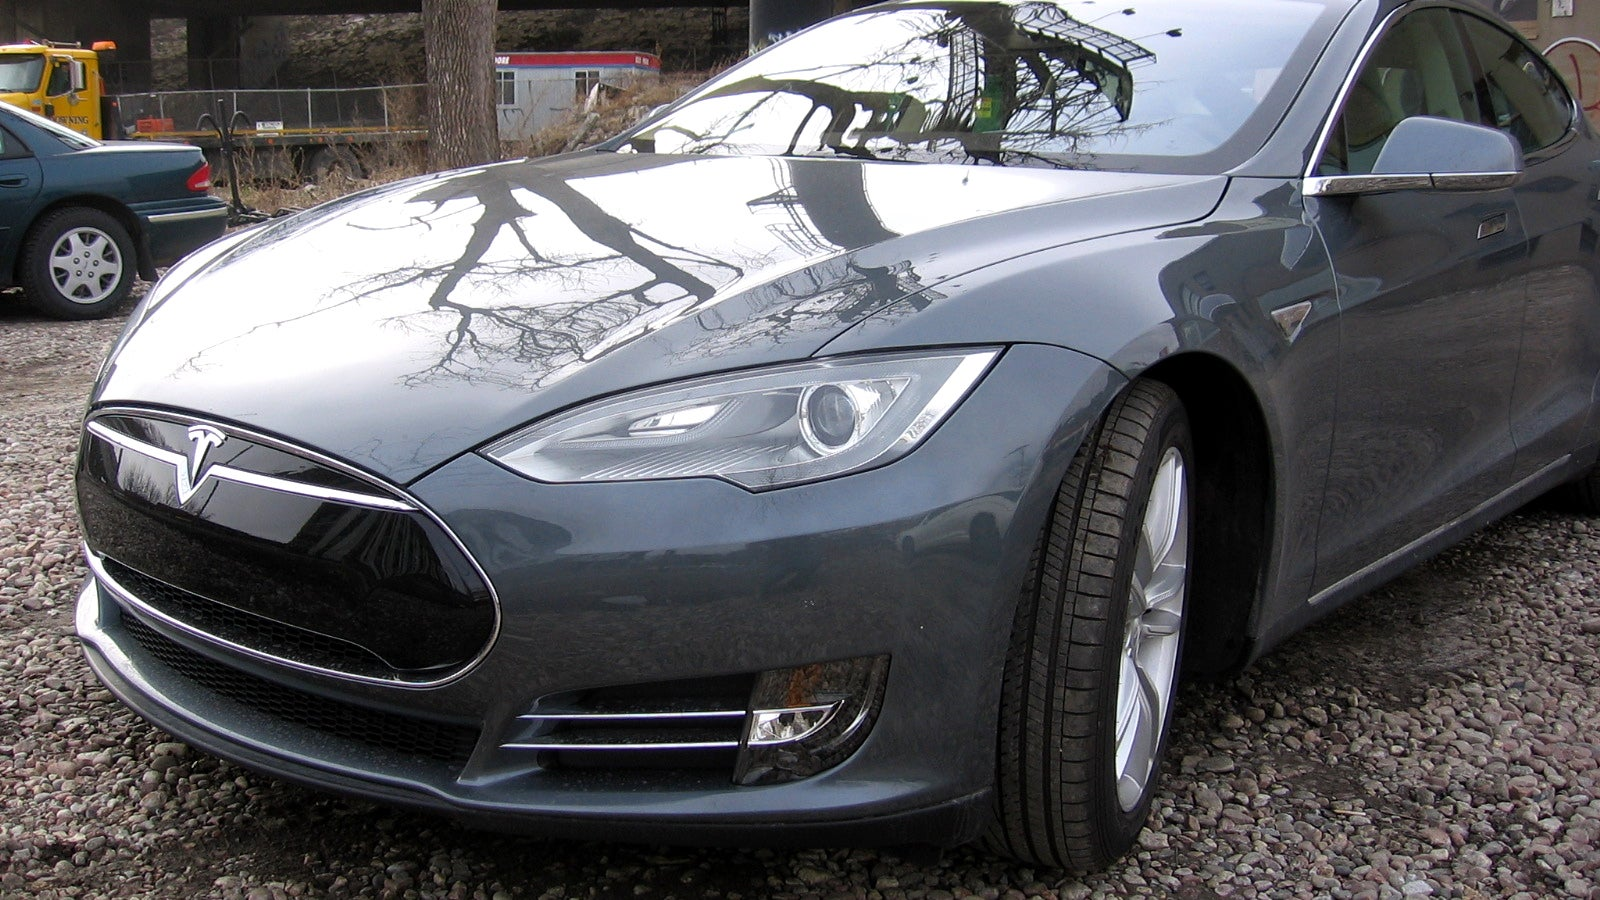 Tesla working on Autopilot radar changes after crash